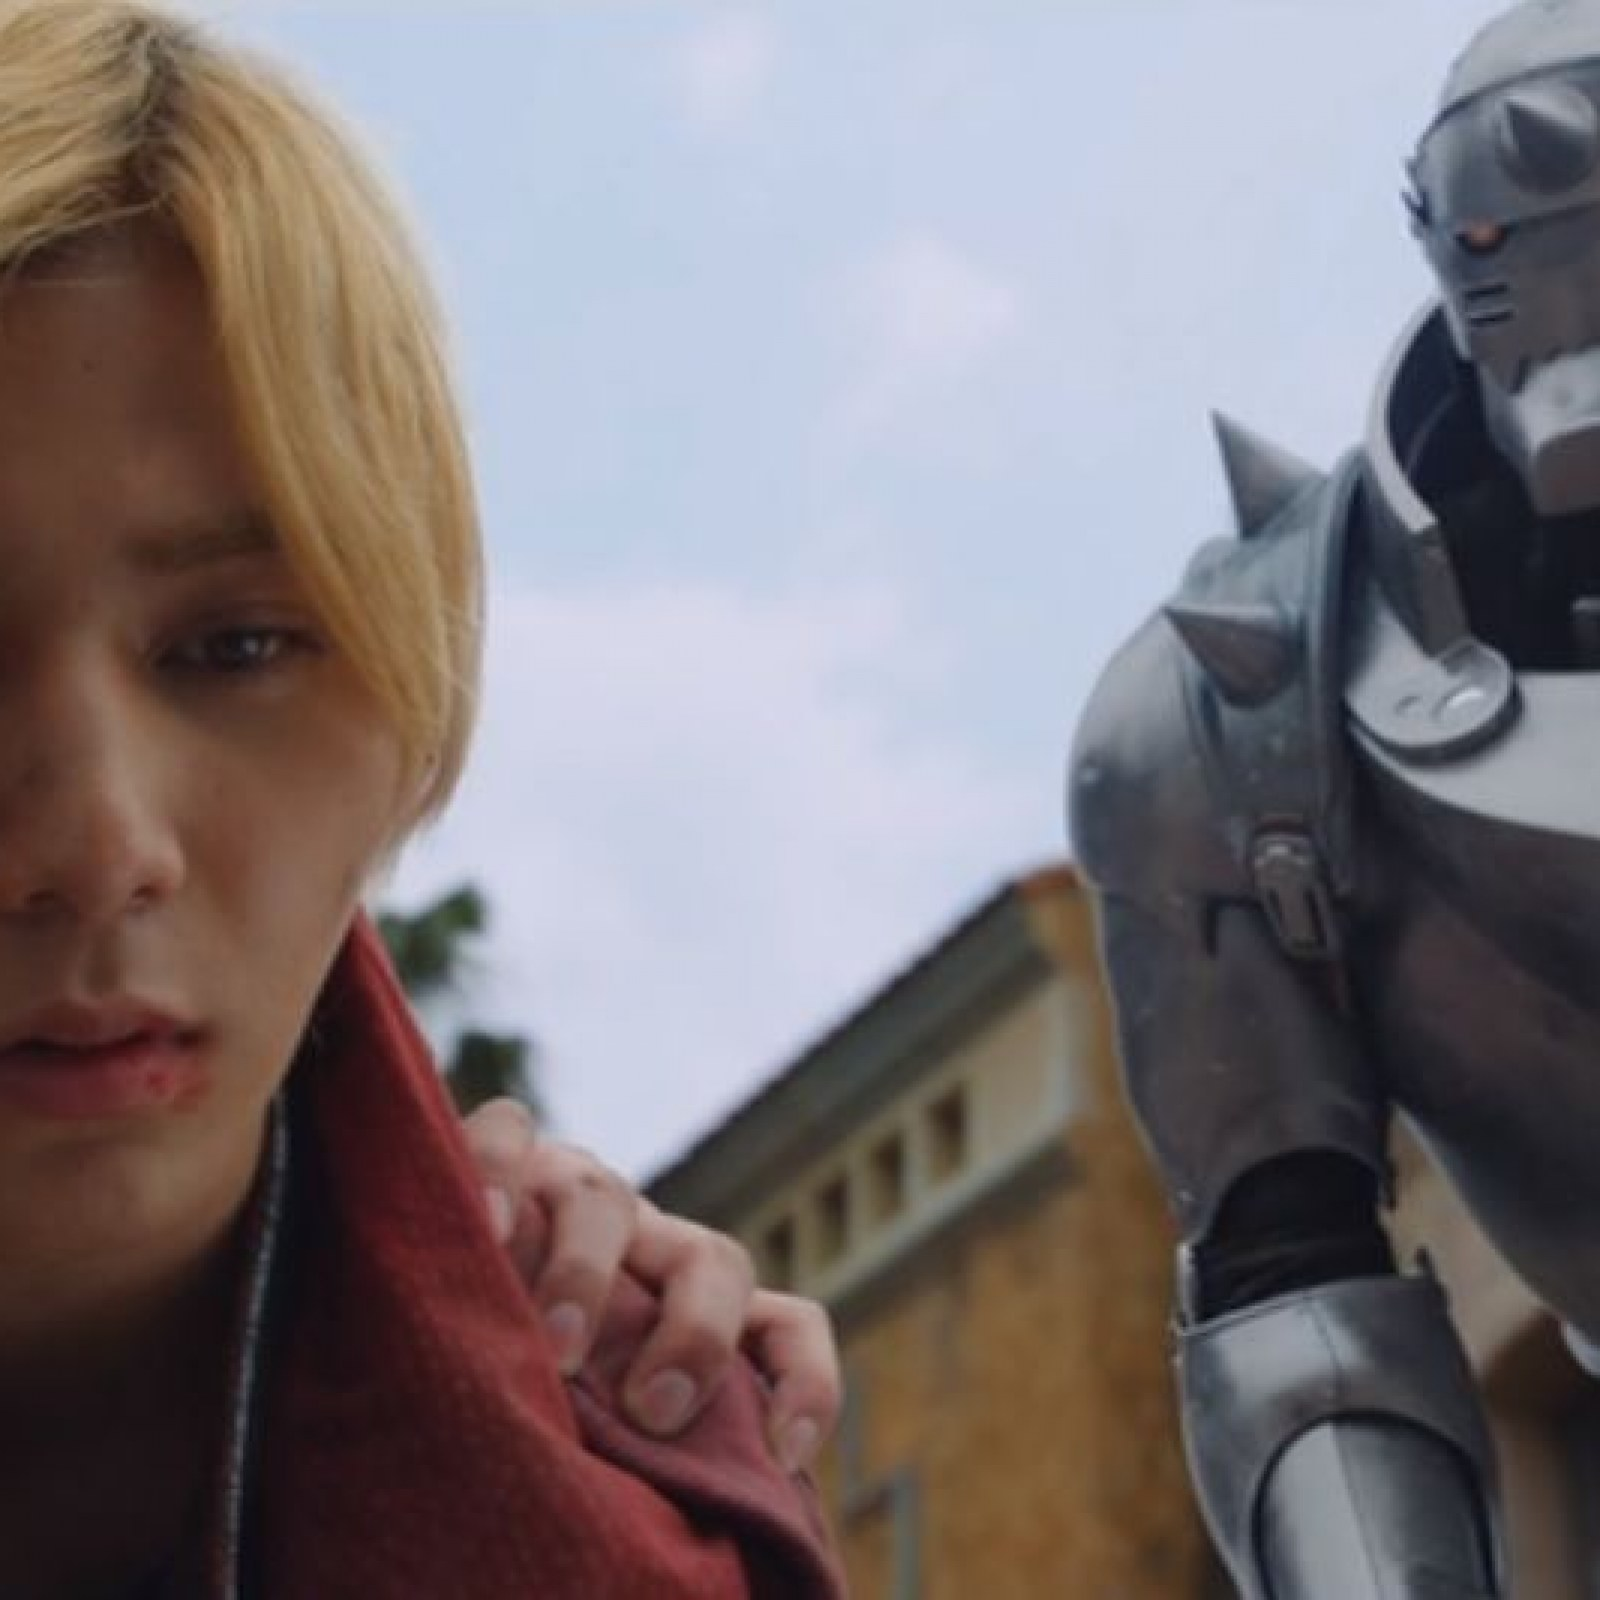 Netflix's 'Fullmetal Alchemist' Live Action Movie: Why Fans